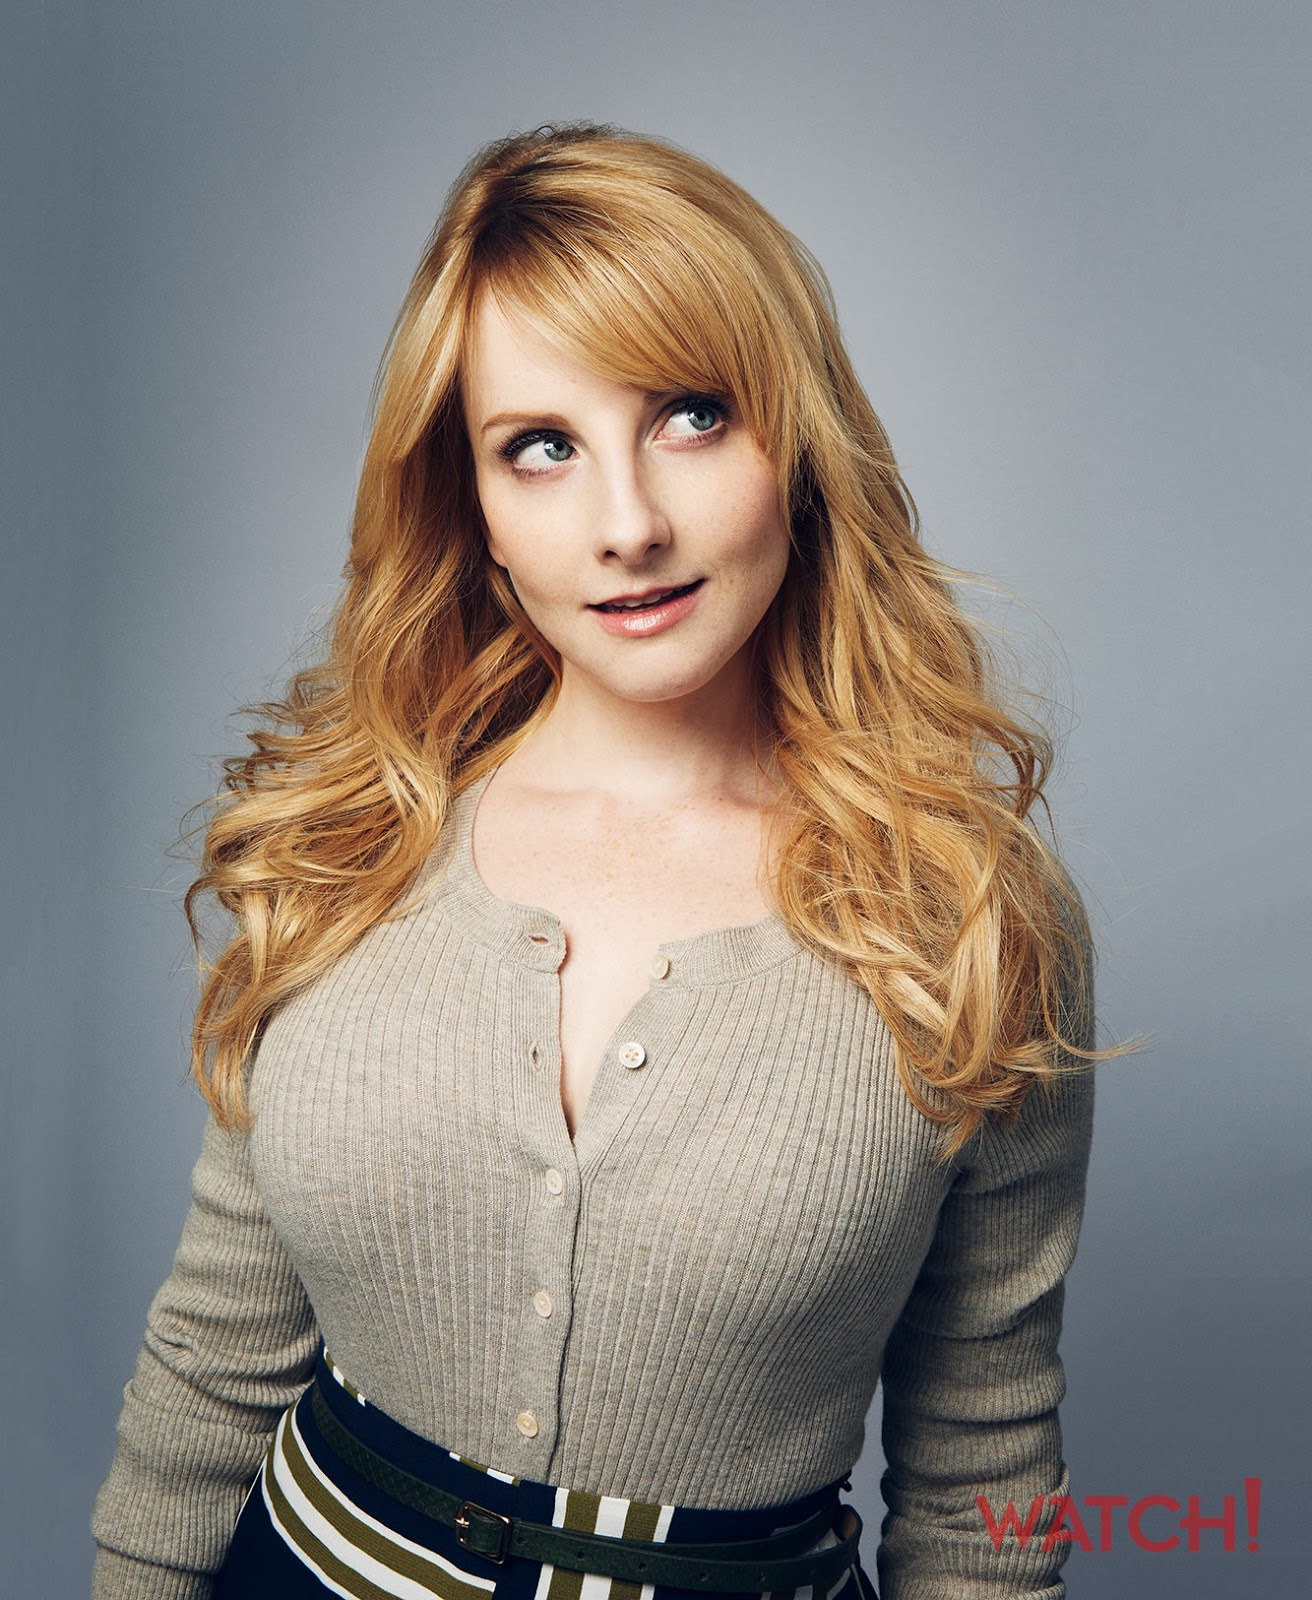 I Will Be Showing Off A Series Of Busty Shorties In The Next Few Days Today We Introduce Melissa Rauch Who Plays Bernadette On The Big Bang Theory